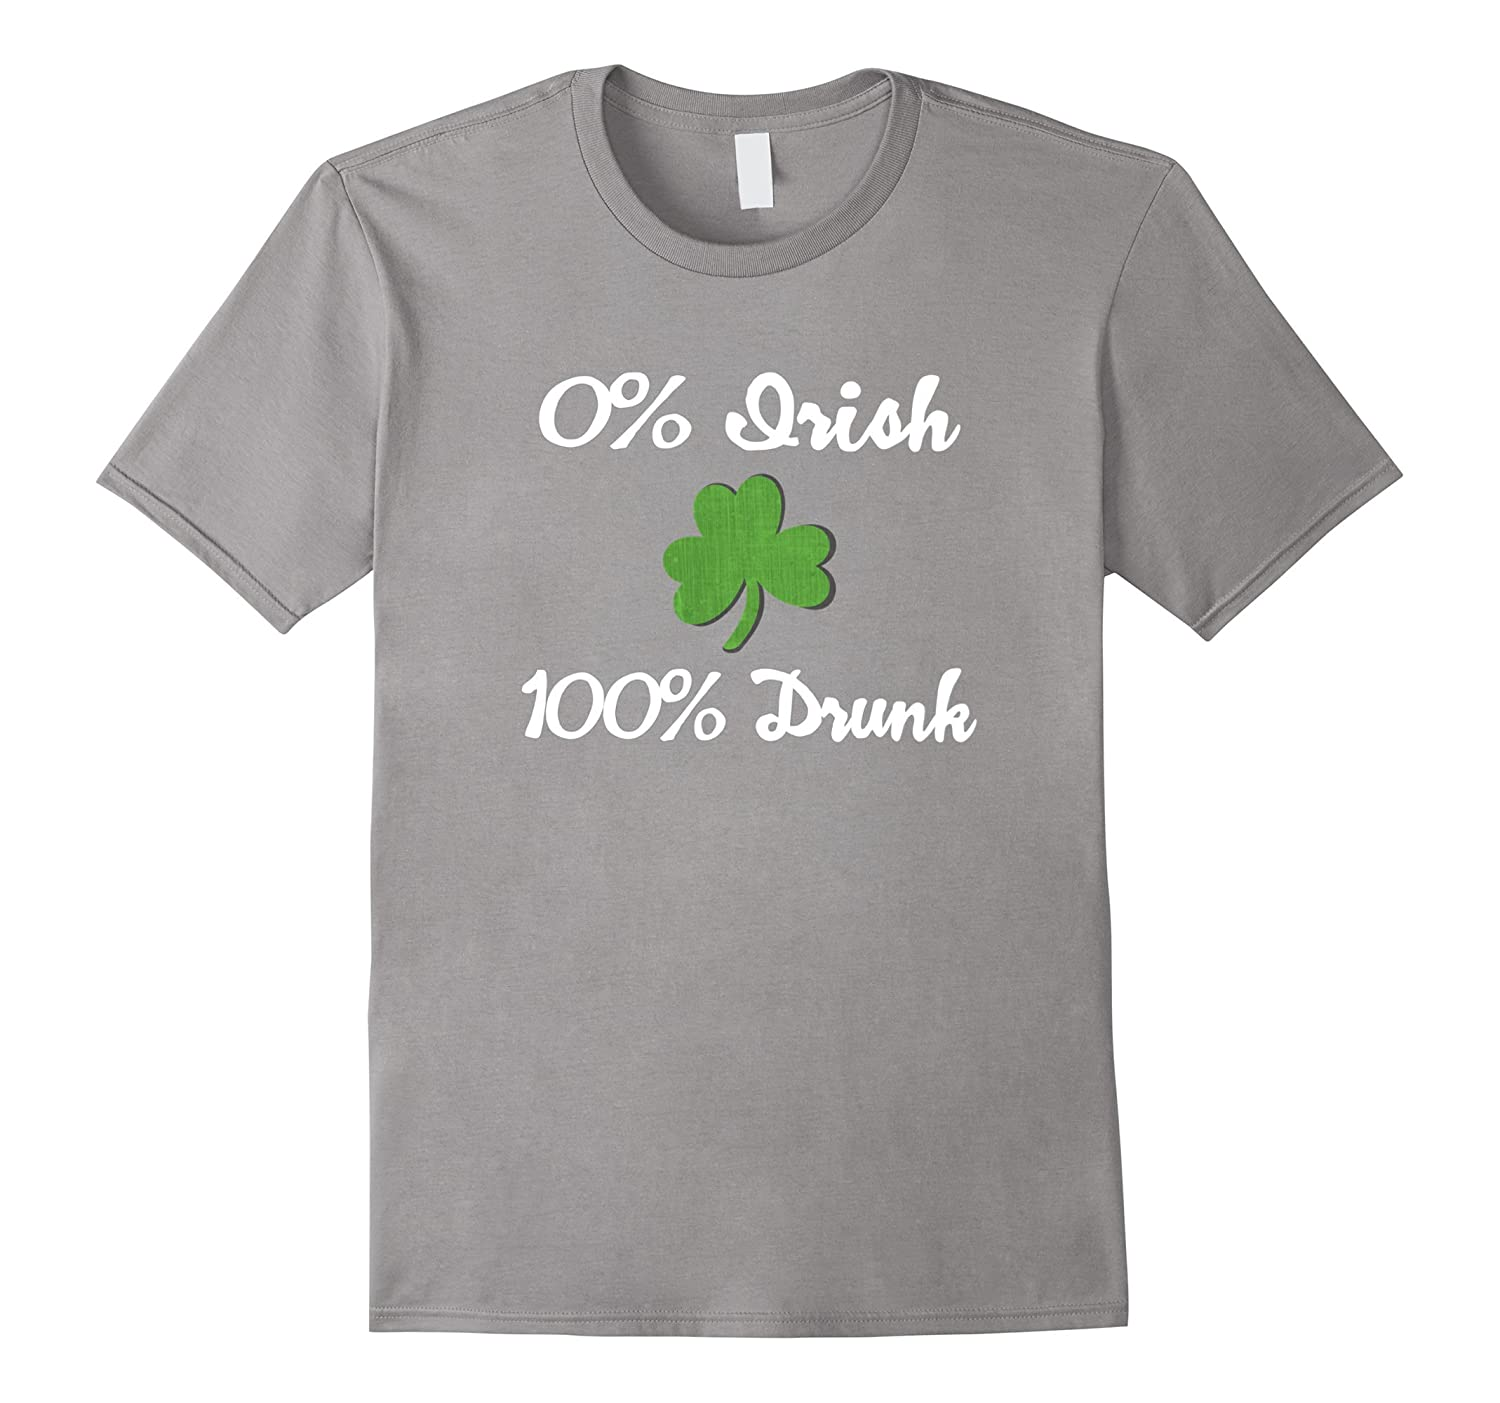 0 Irish 100 Drunk Funny T Shirt-TD